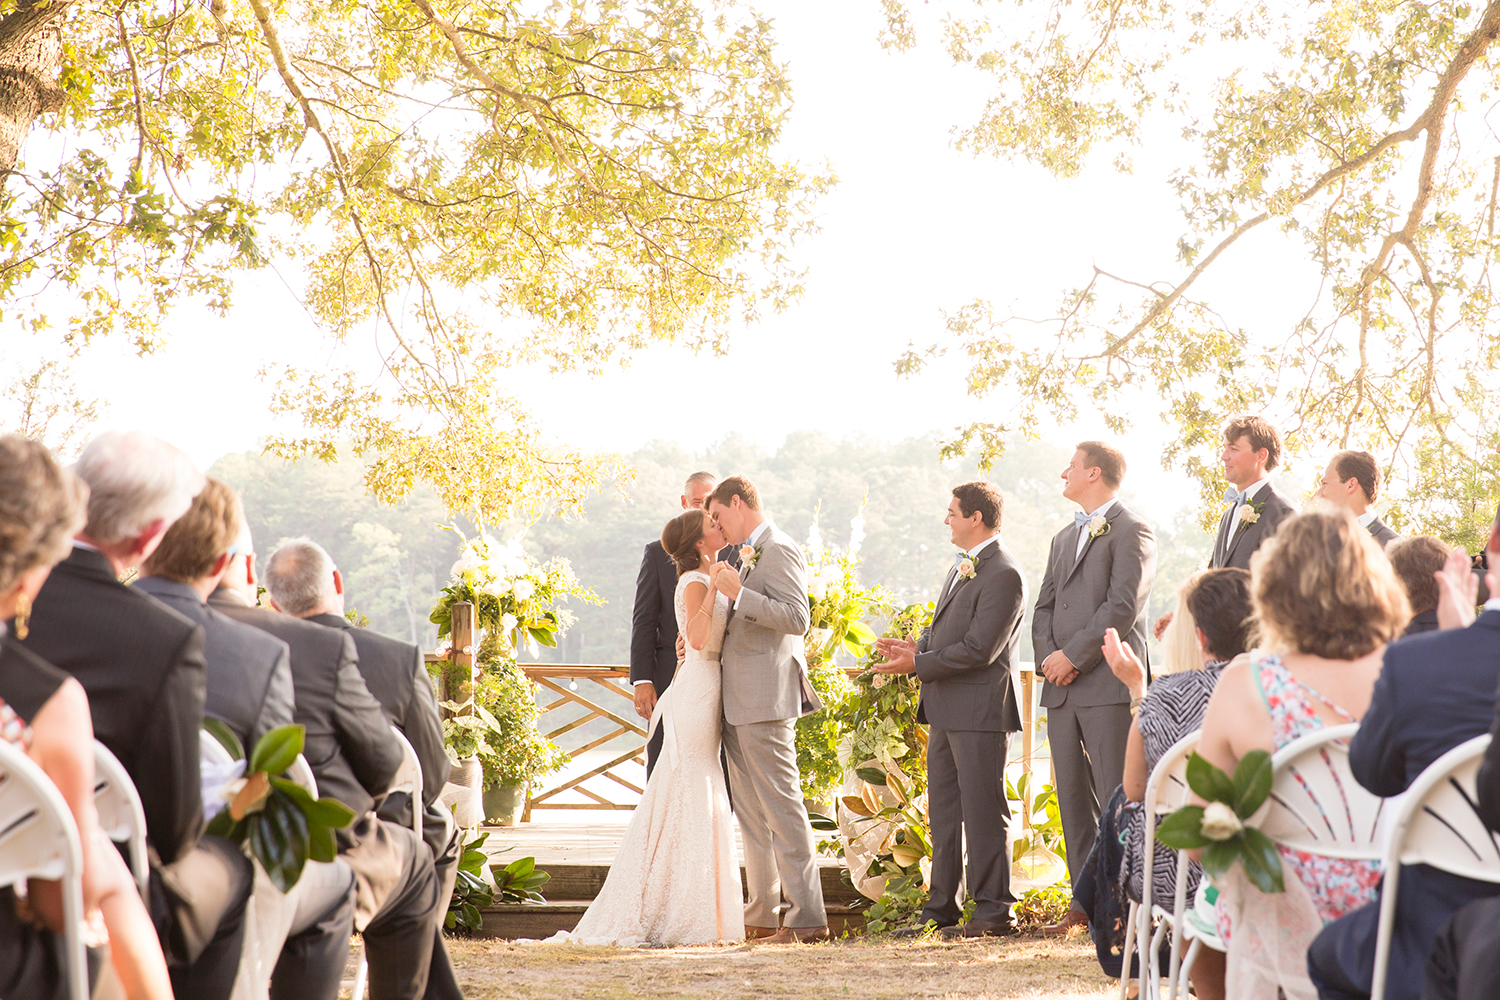 WhatTimeShouldYouStartYourOutdoorWeddingCeremony